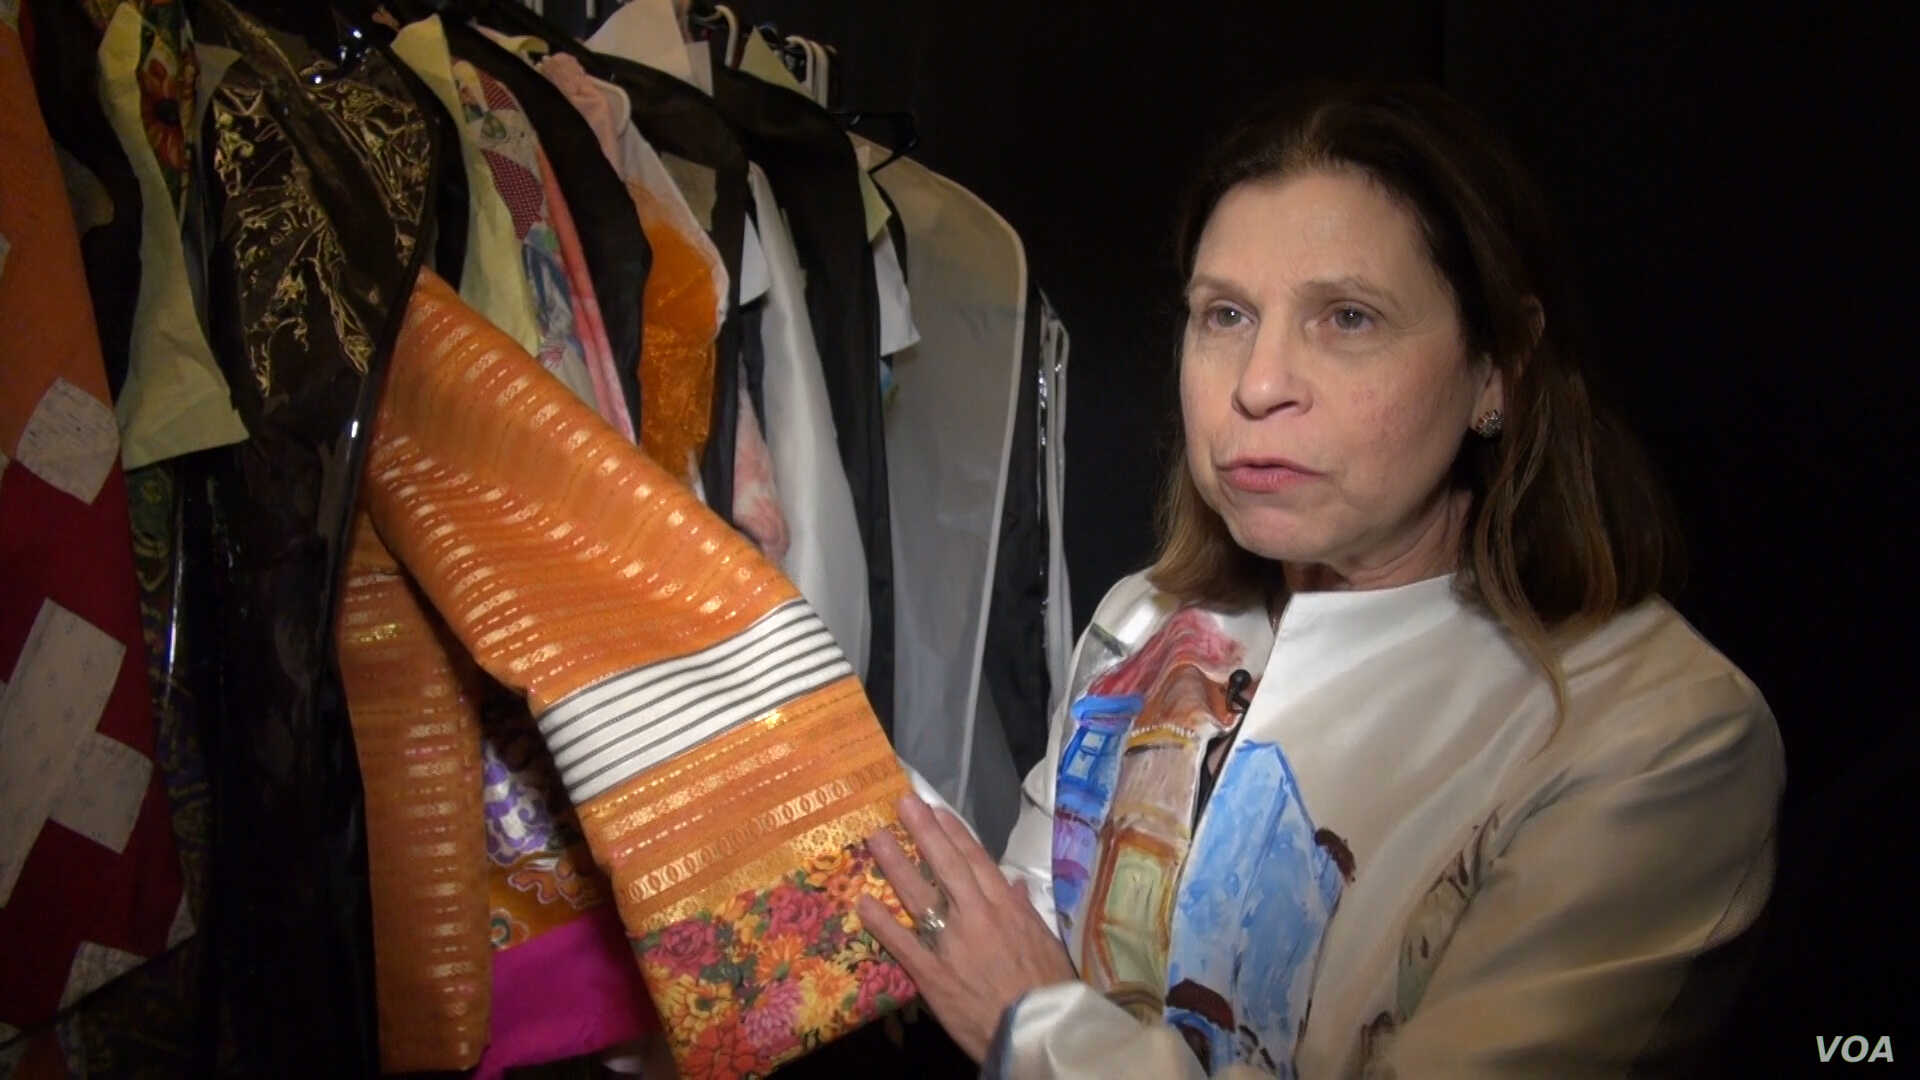 Designer Ellen London displays a sleeve on one of her designs that combines fabric from Thailand, the US Appalachian region and Syria. (Photo: J. Soh / VOA)